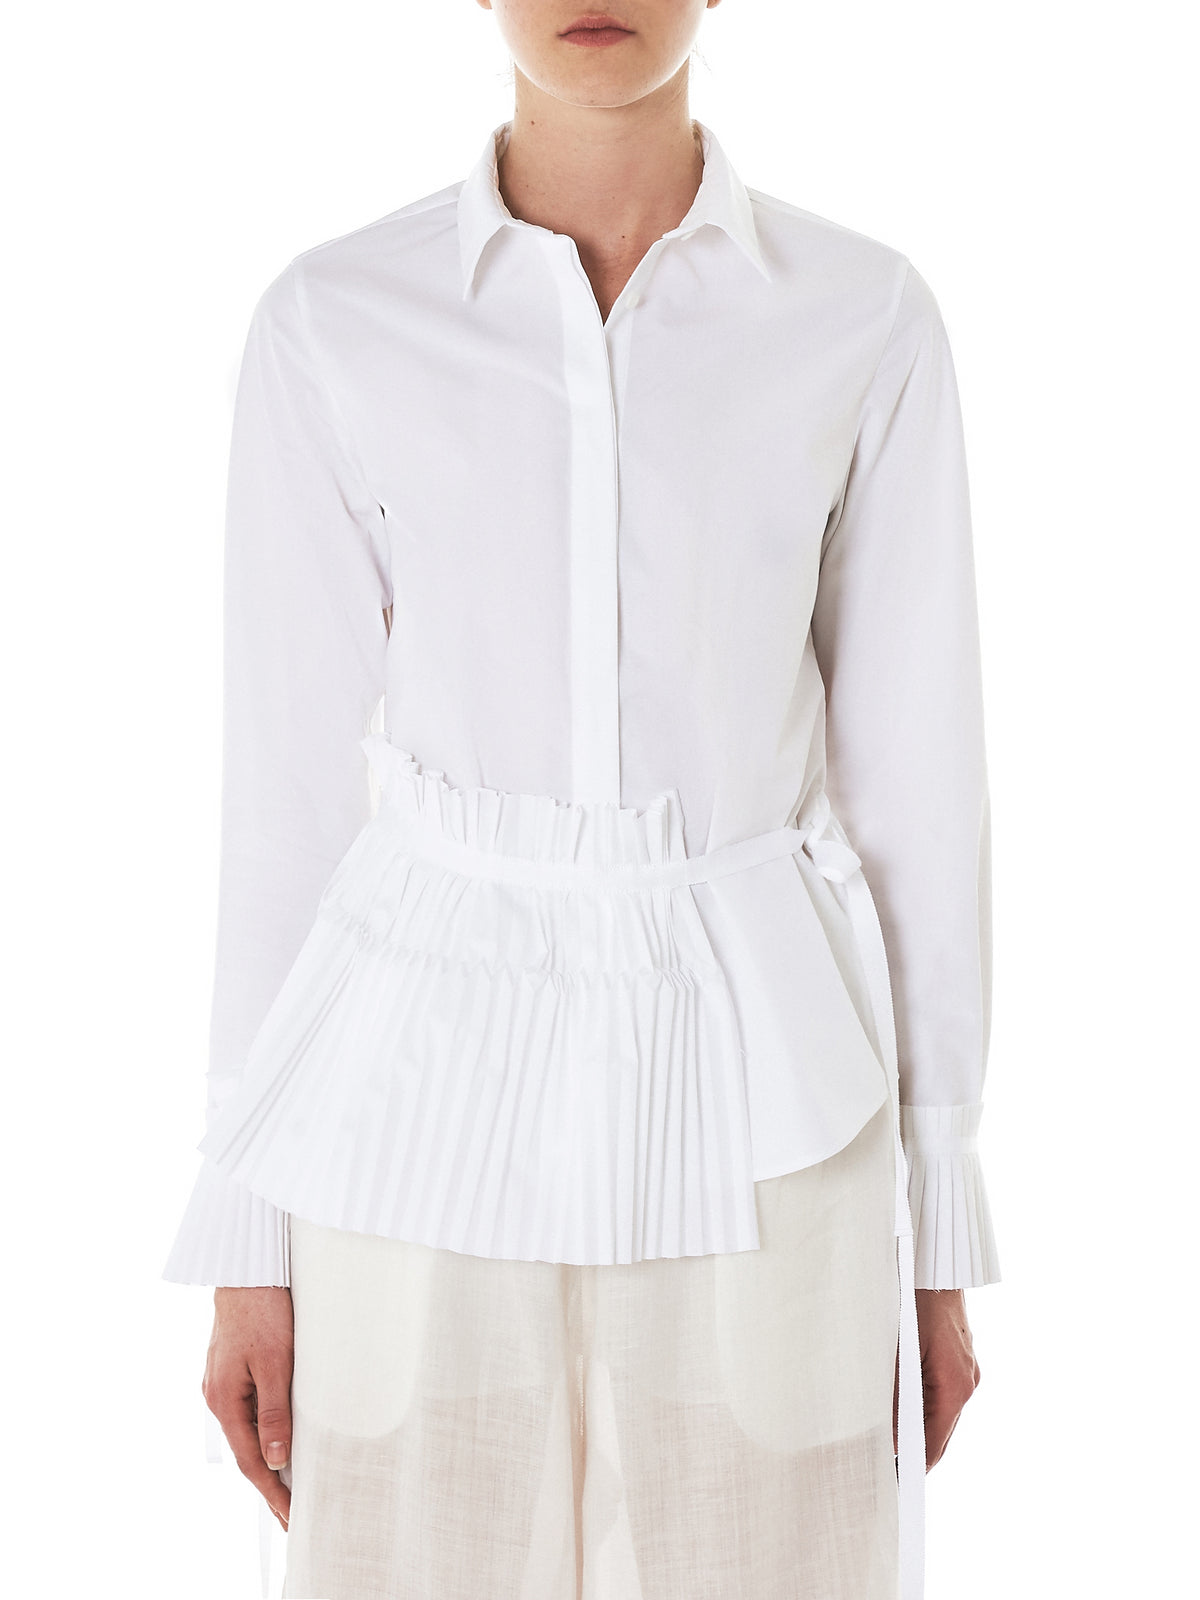 Shanshan Ruan Pleat Shirt - Hlorenzo Front